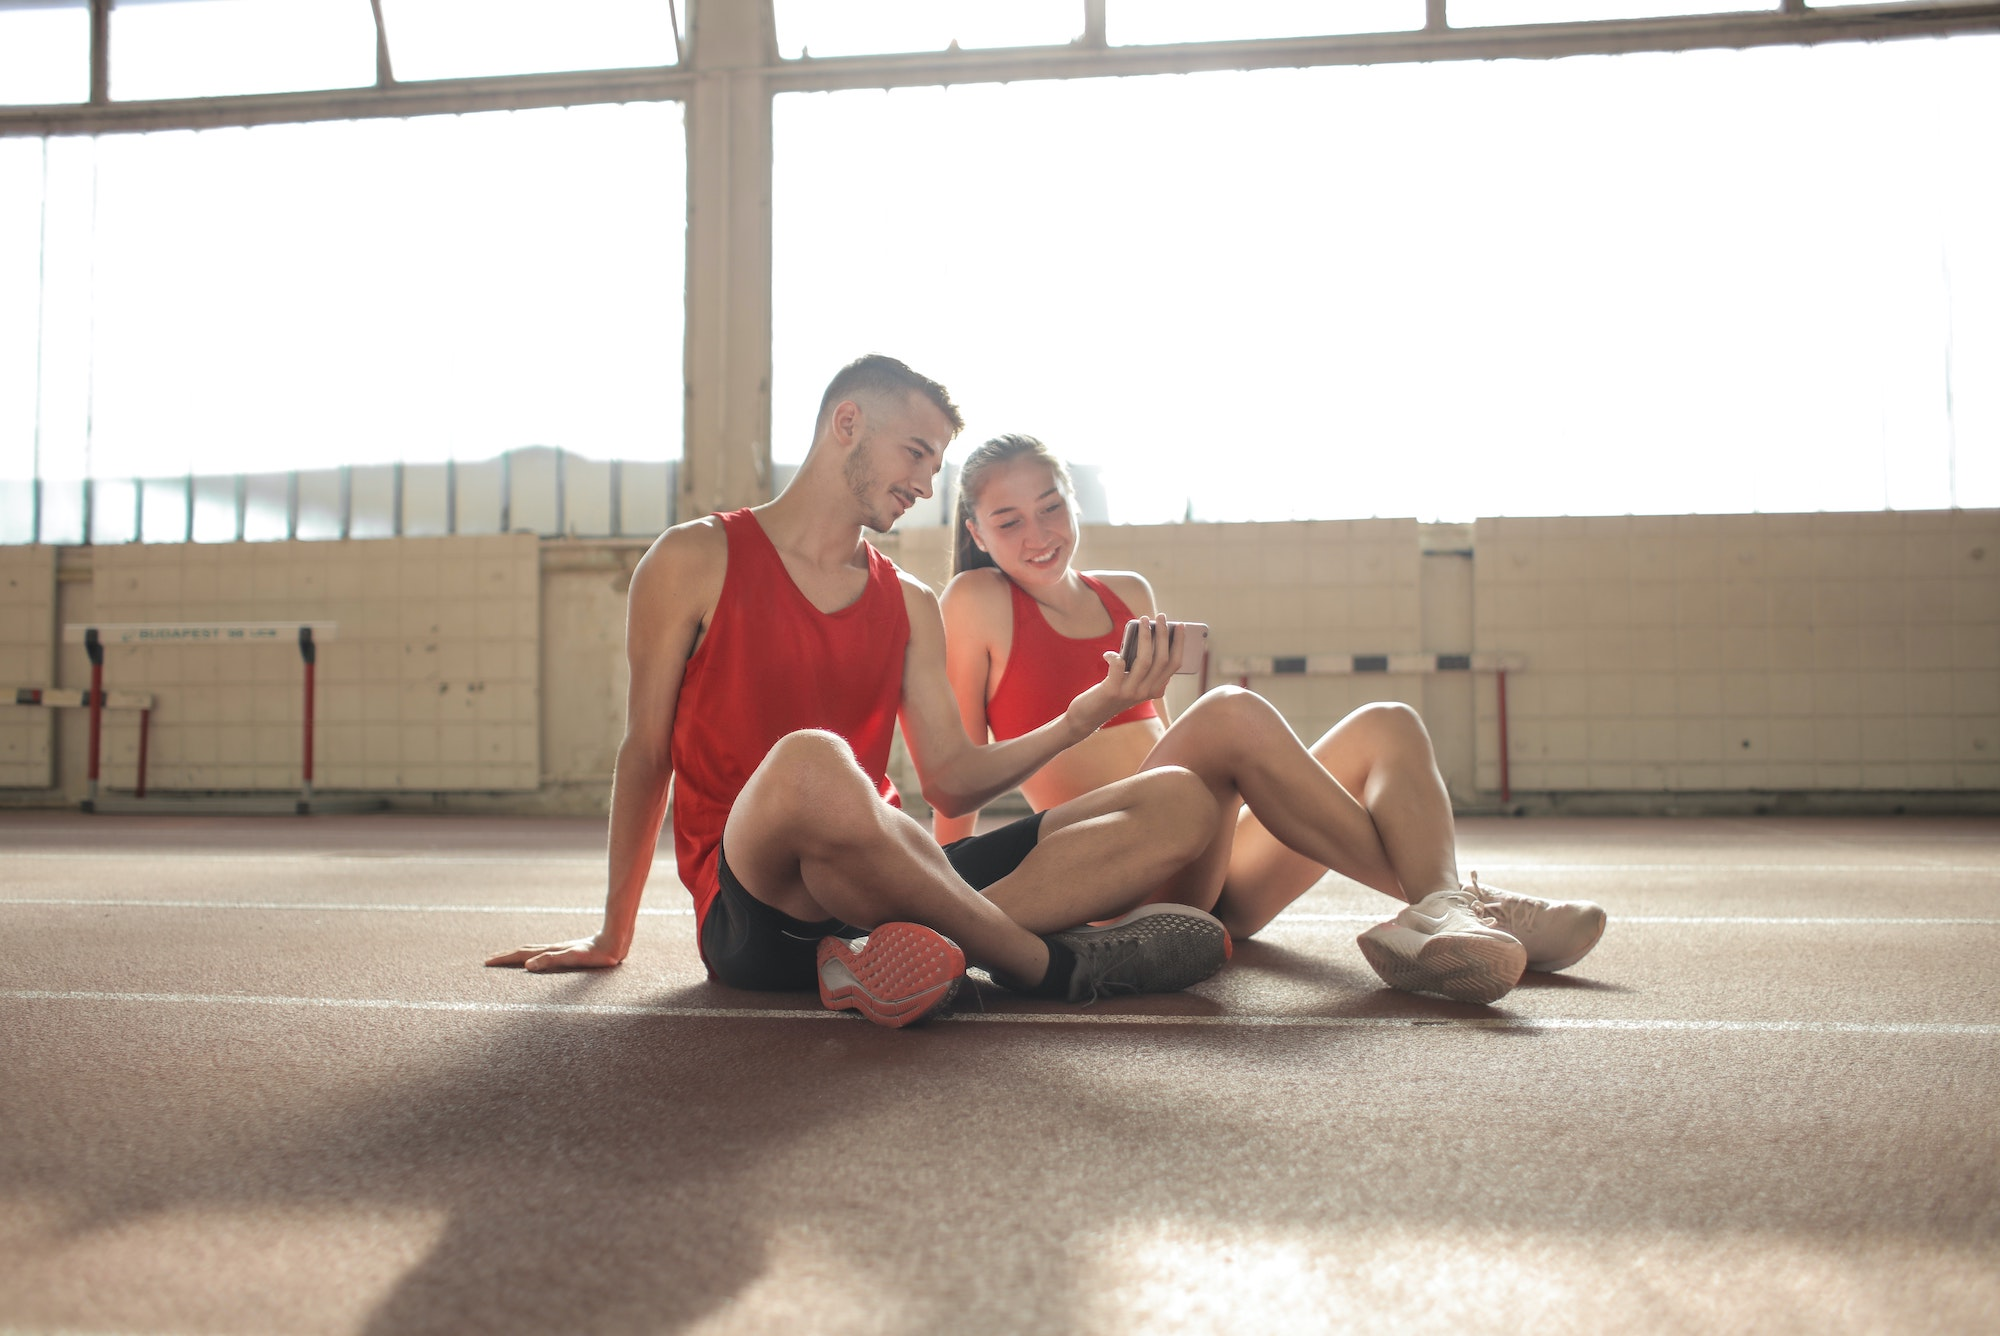 Doing workouts with friends or fellow expats will make staying fit easier and less lonely